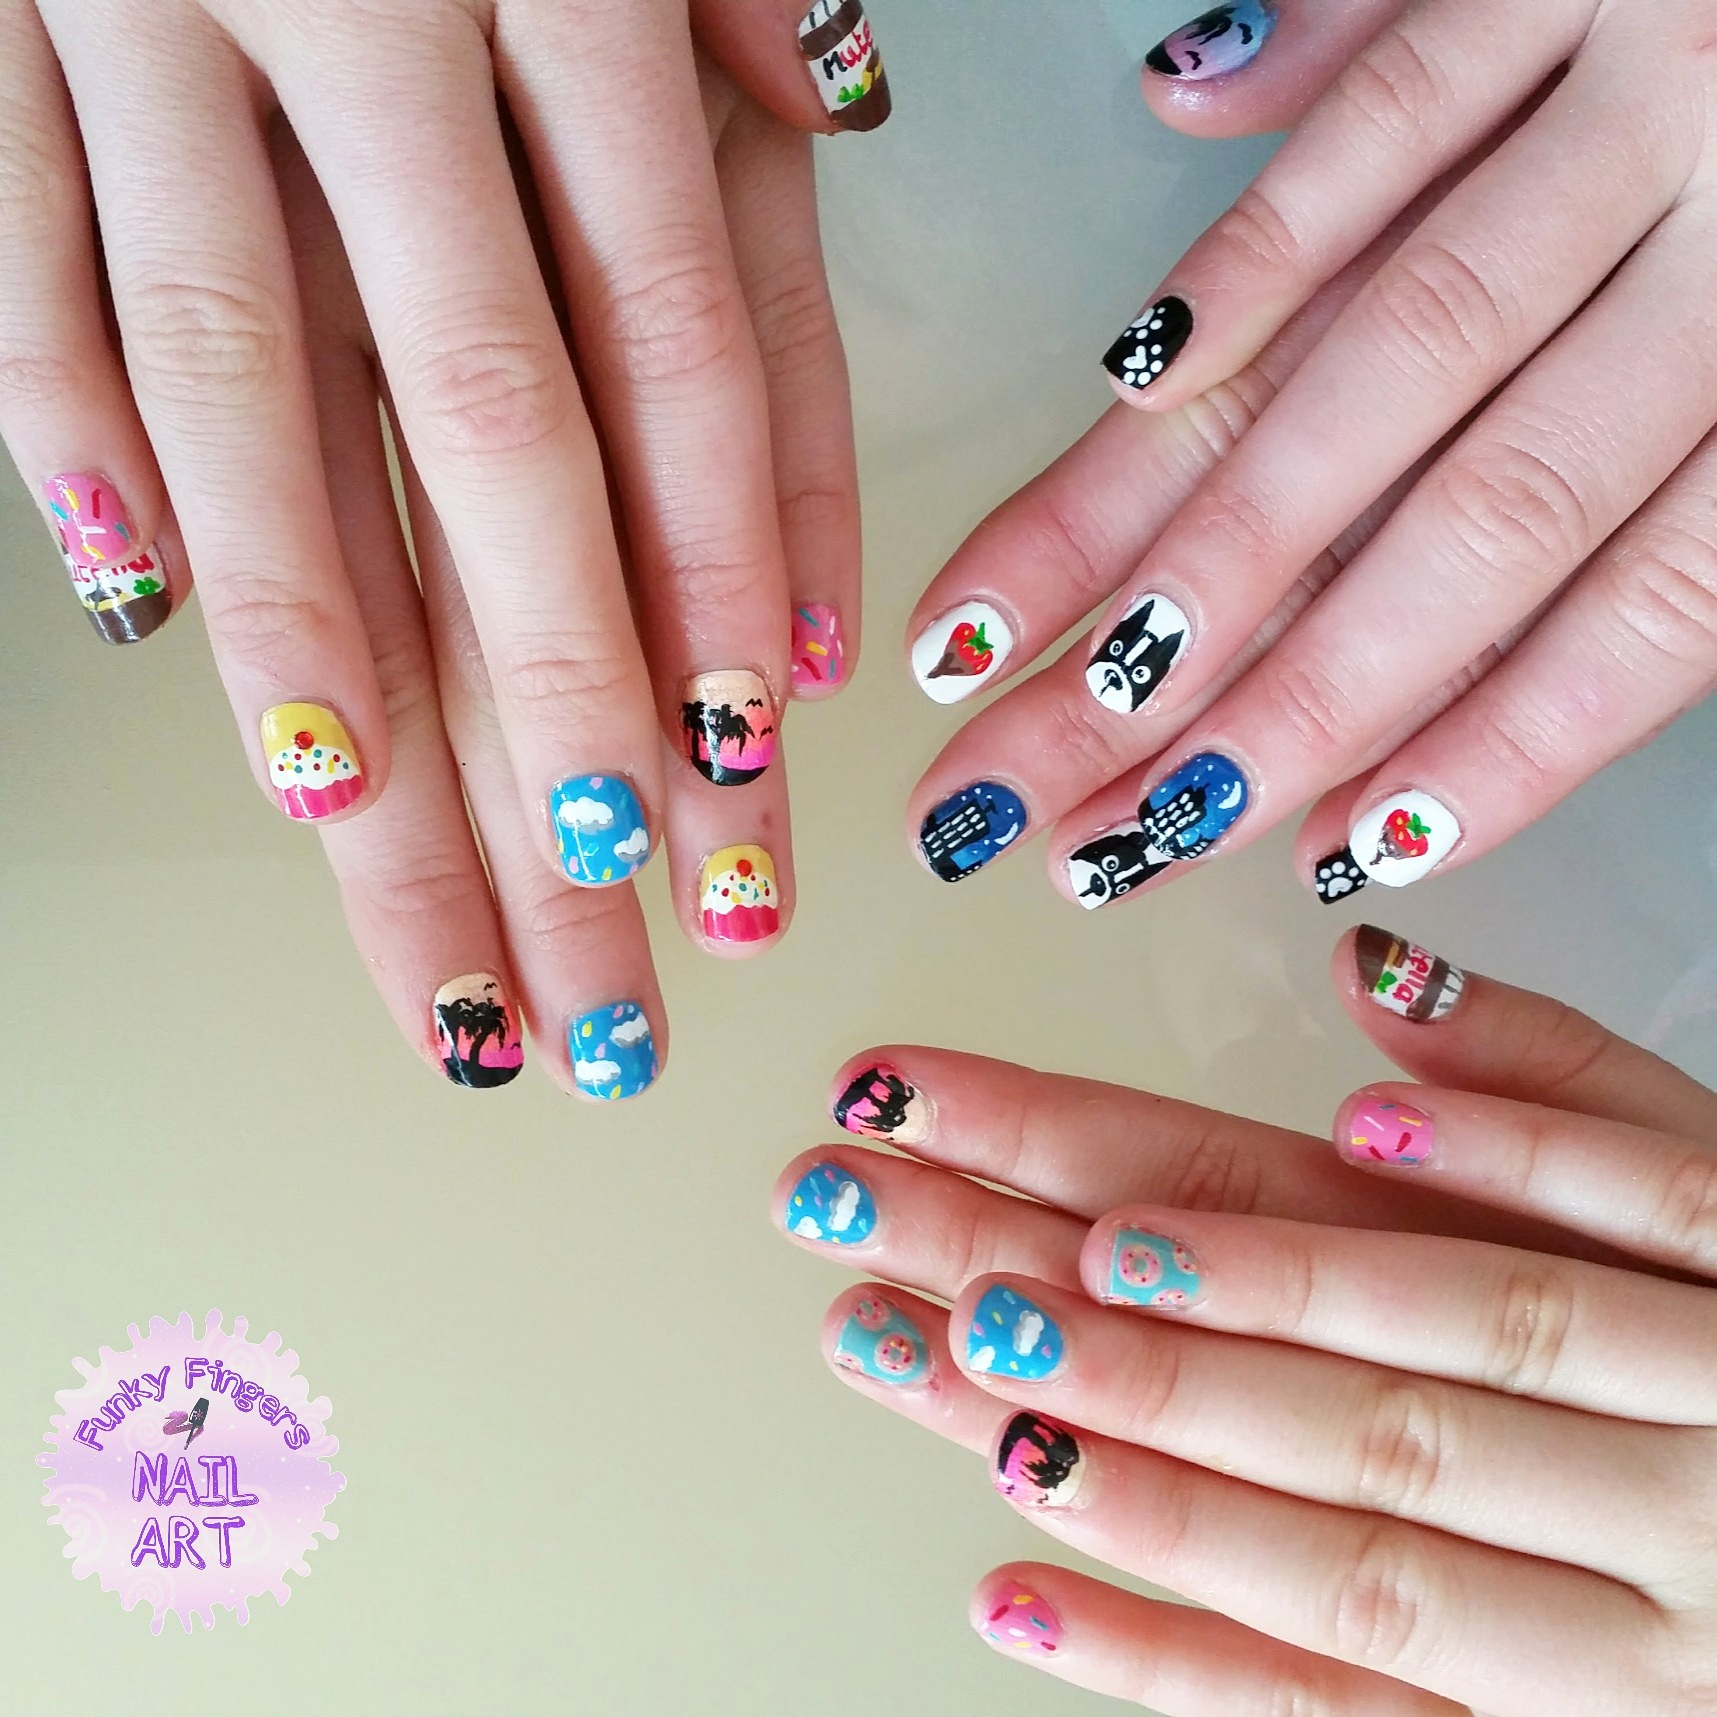 Party nails nail art by Funky fingers nail art